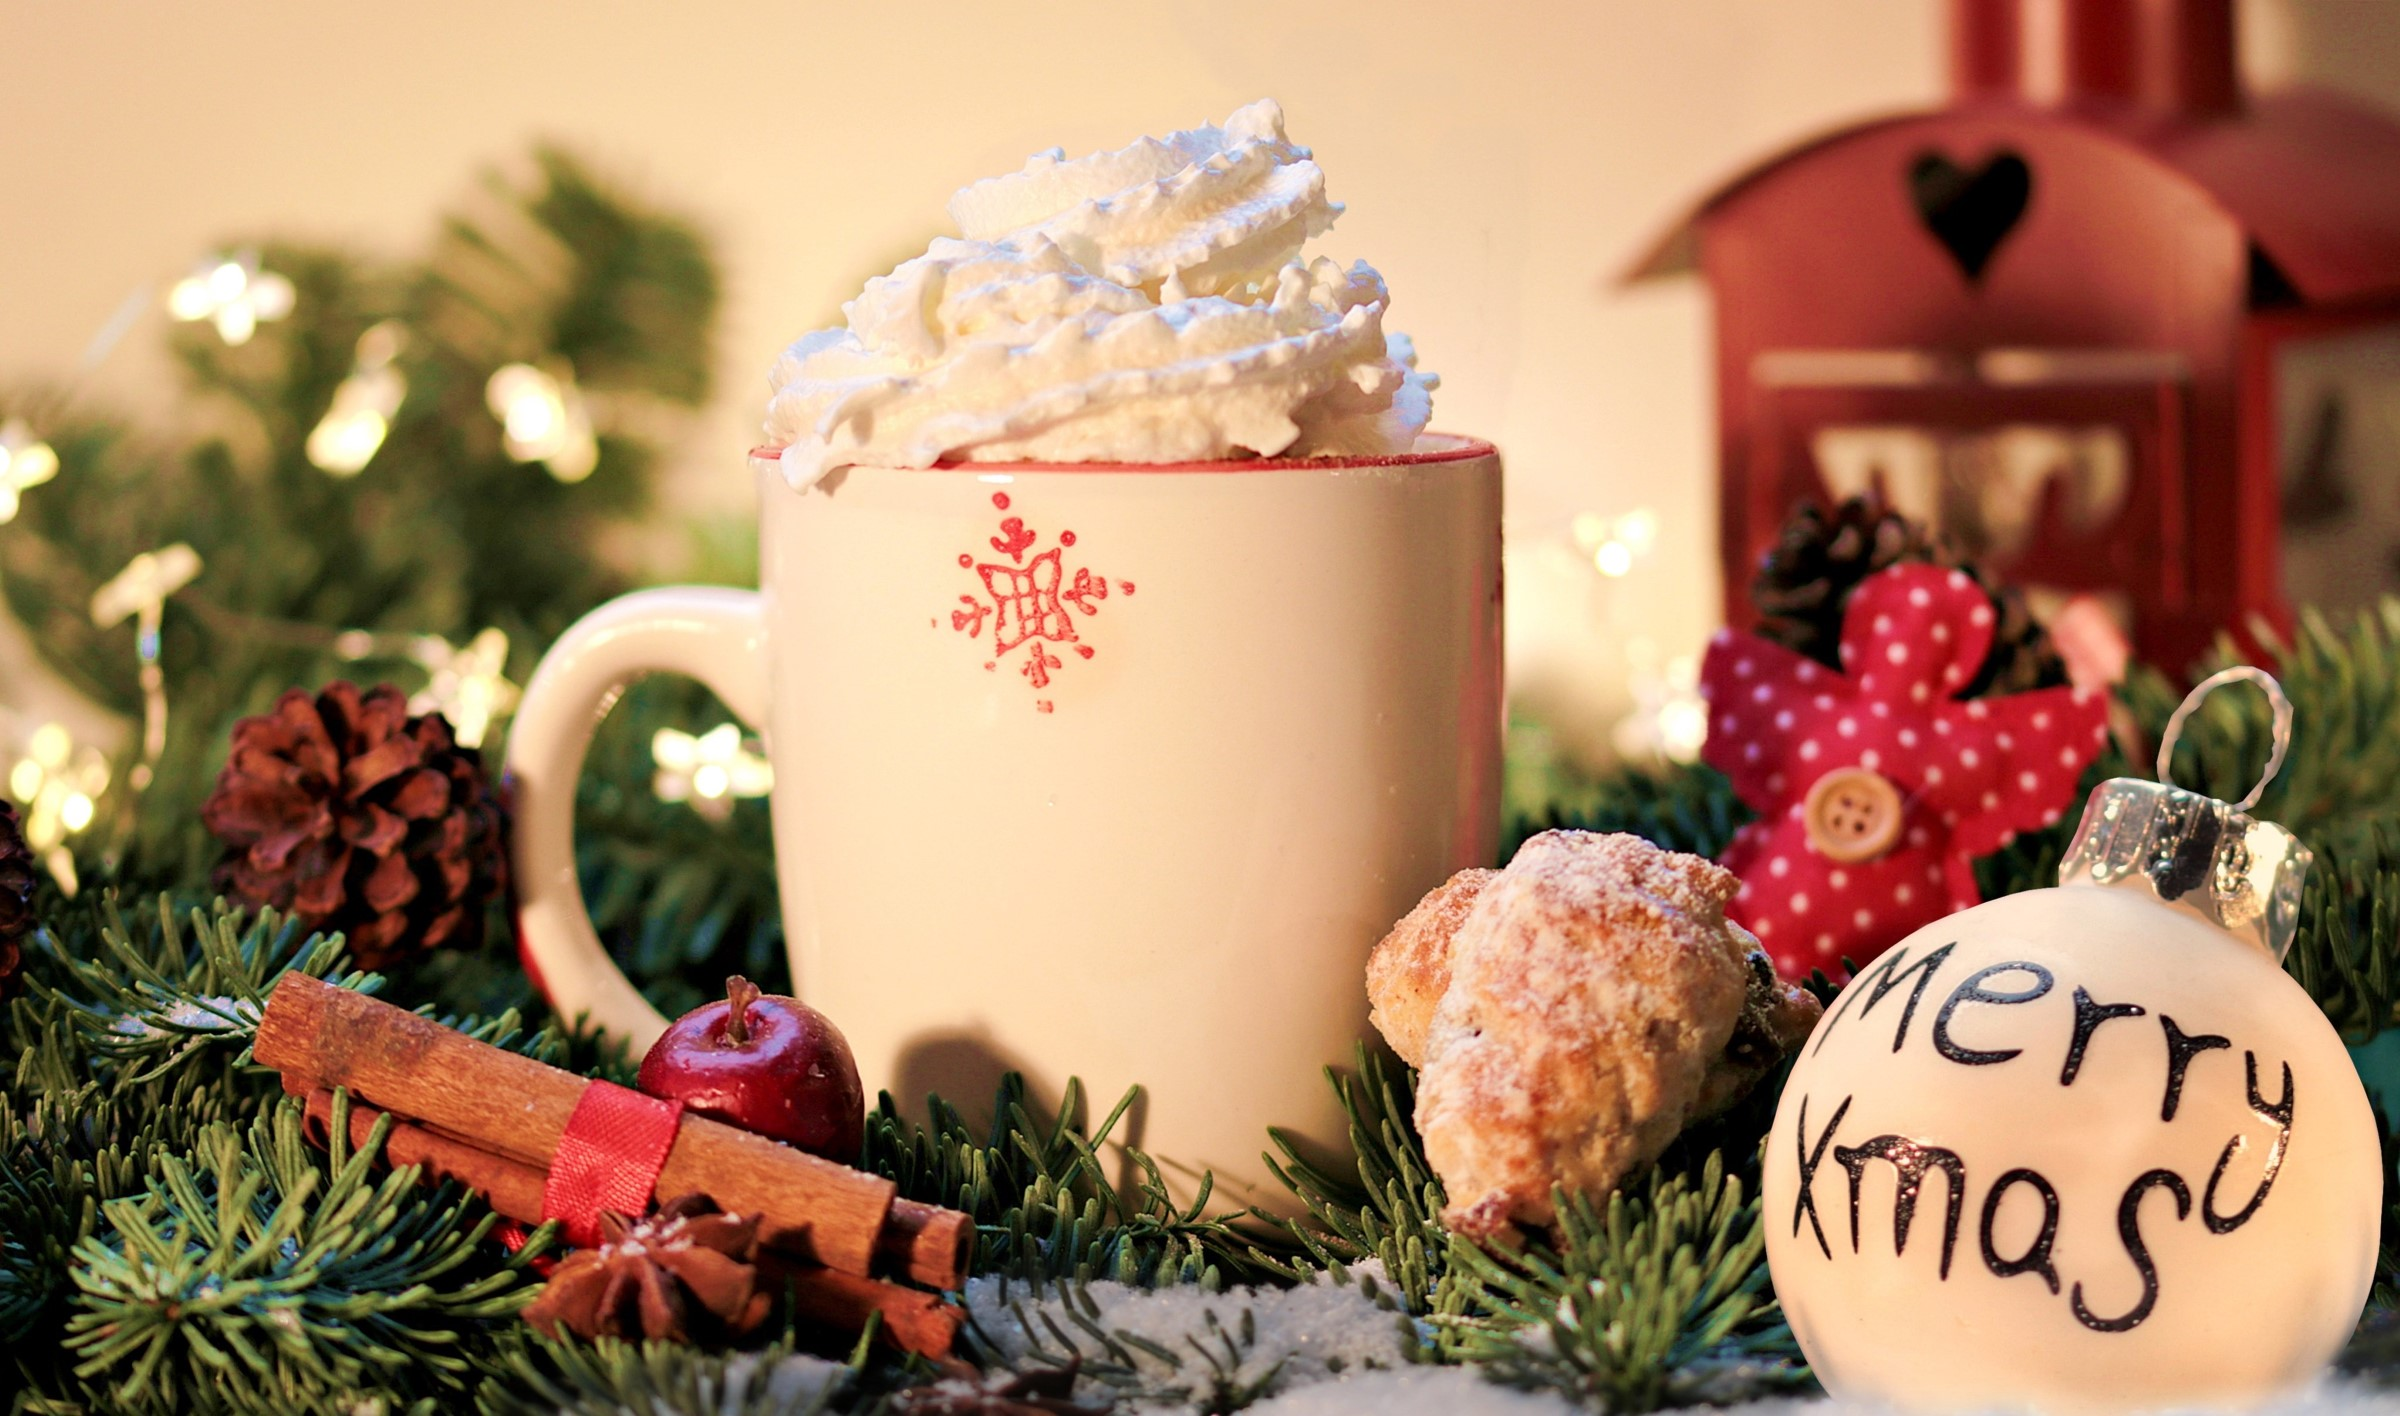 Christmas coffee and decorations